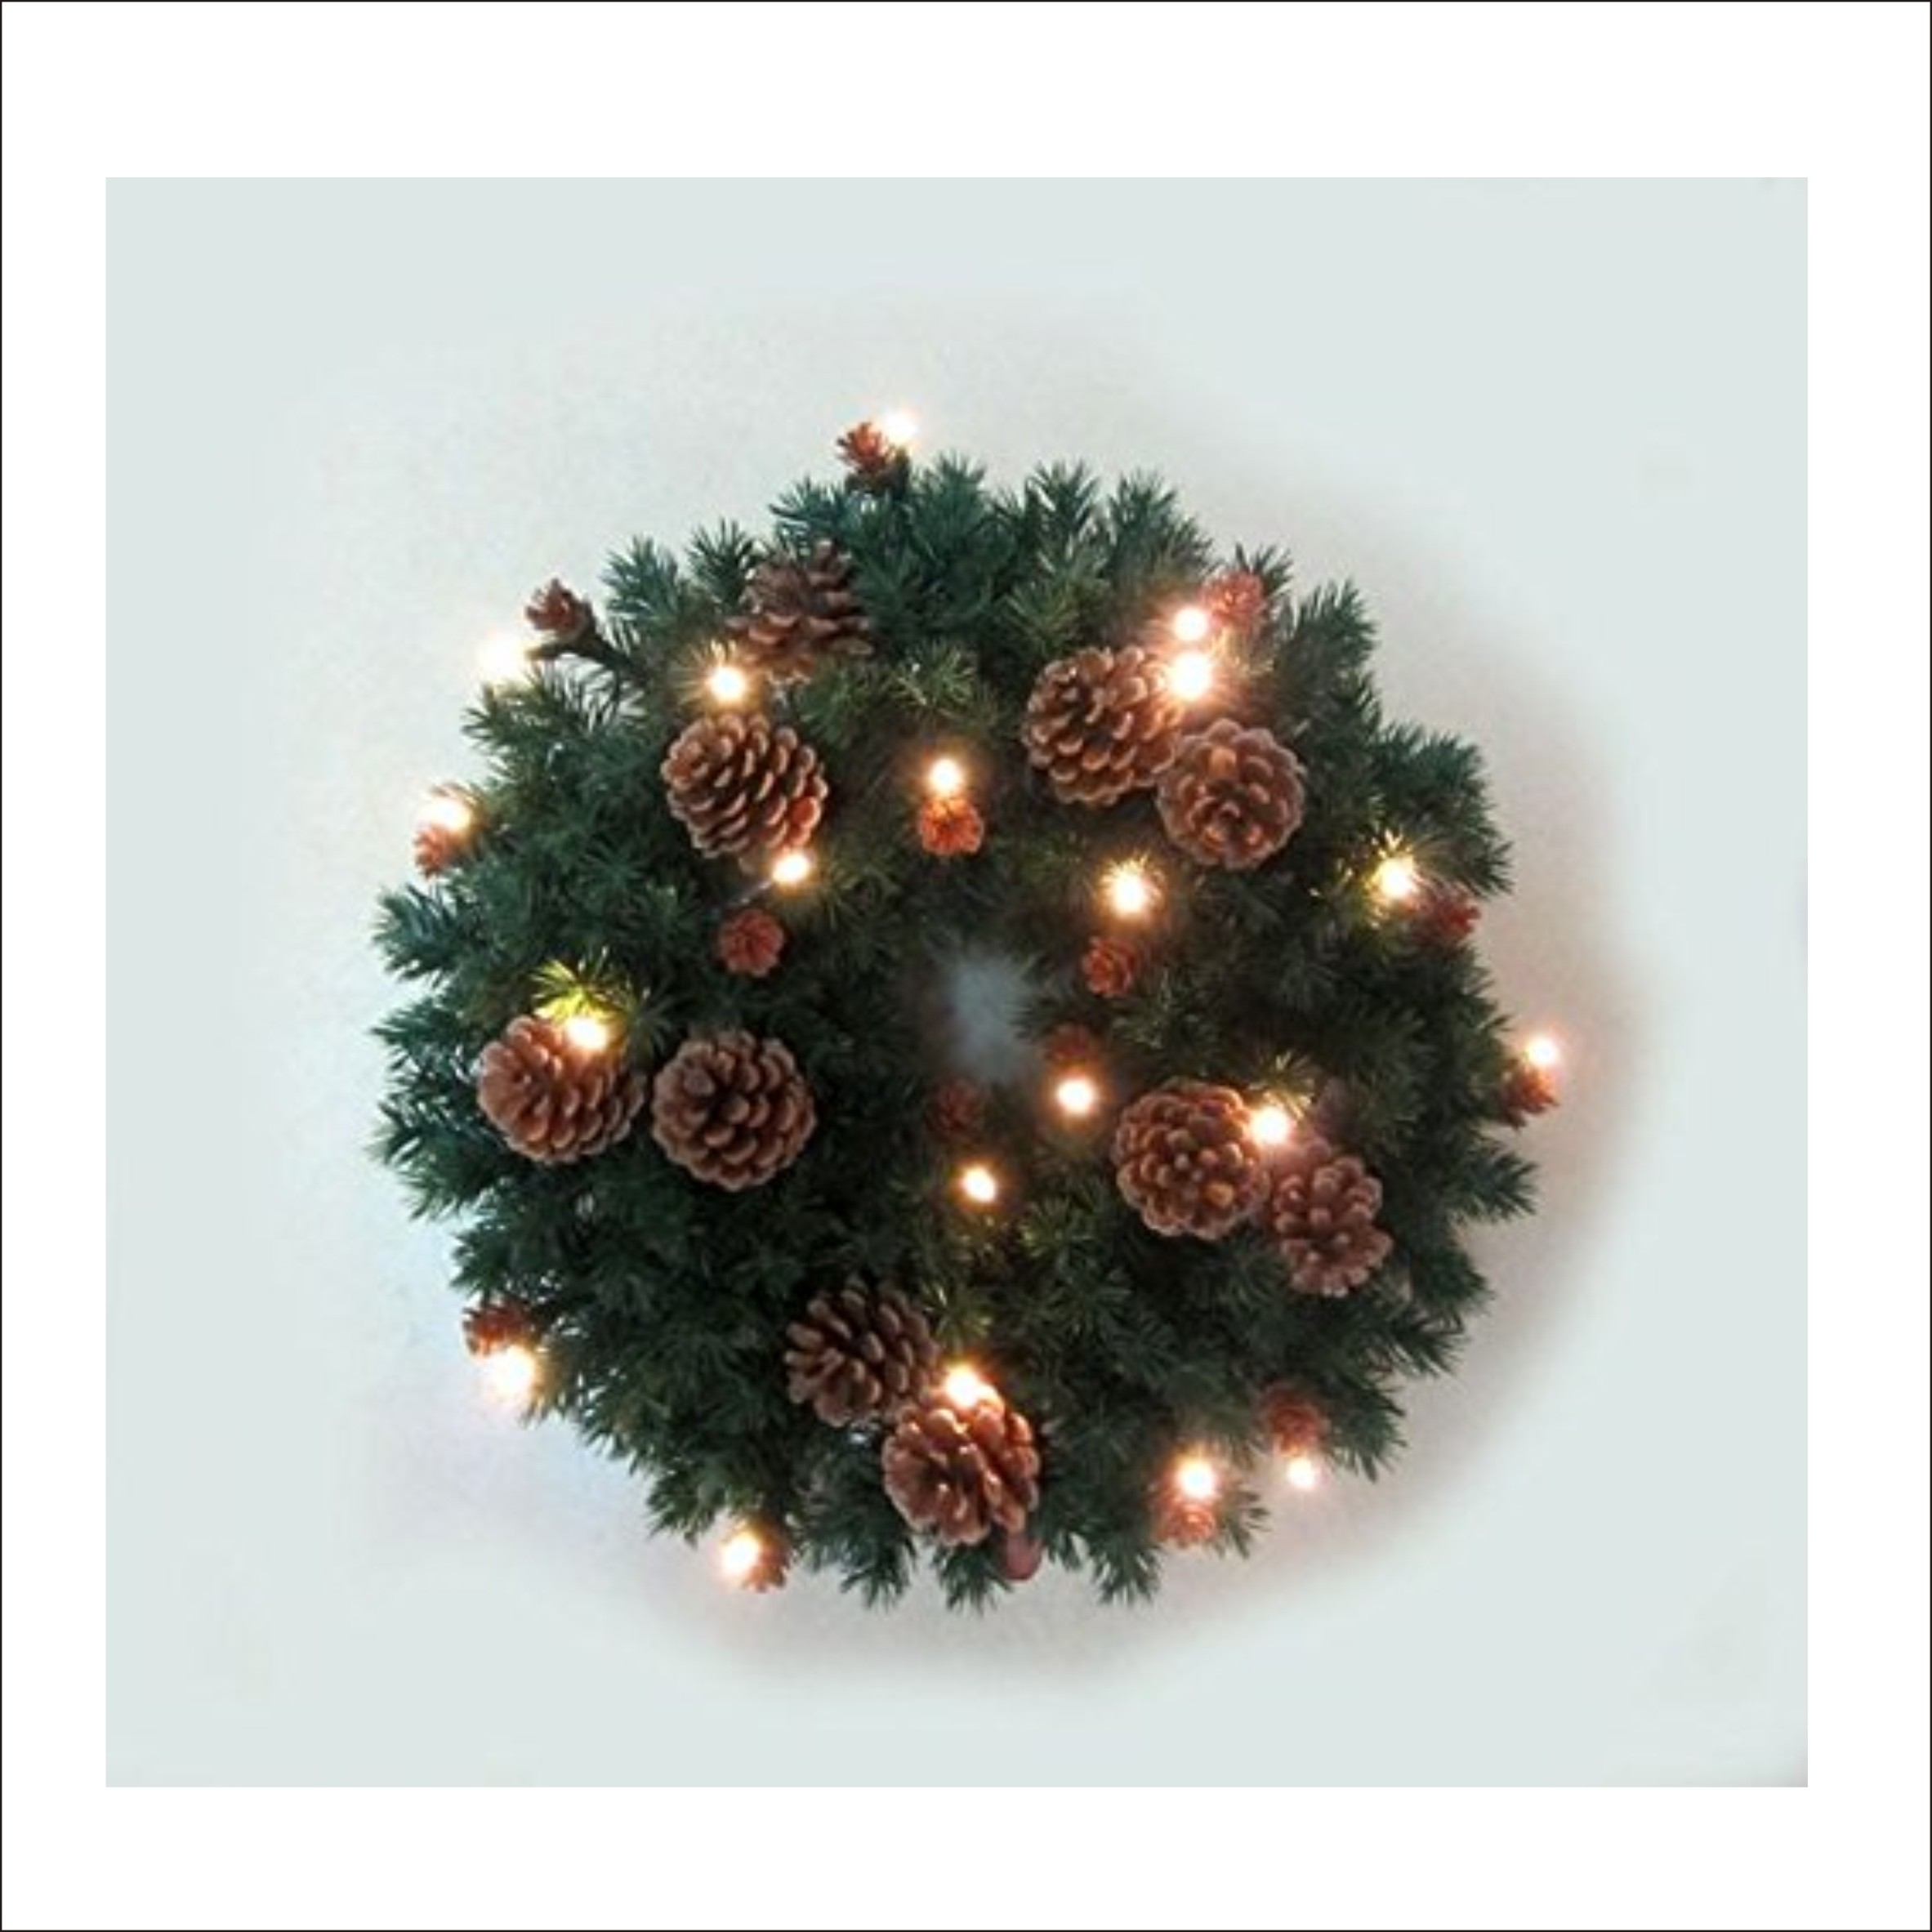 Christmas Wreath With Pine & Cones and Pre-Lit 20 LED Lights